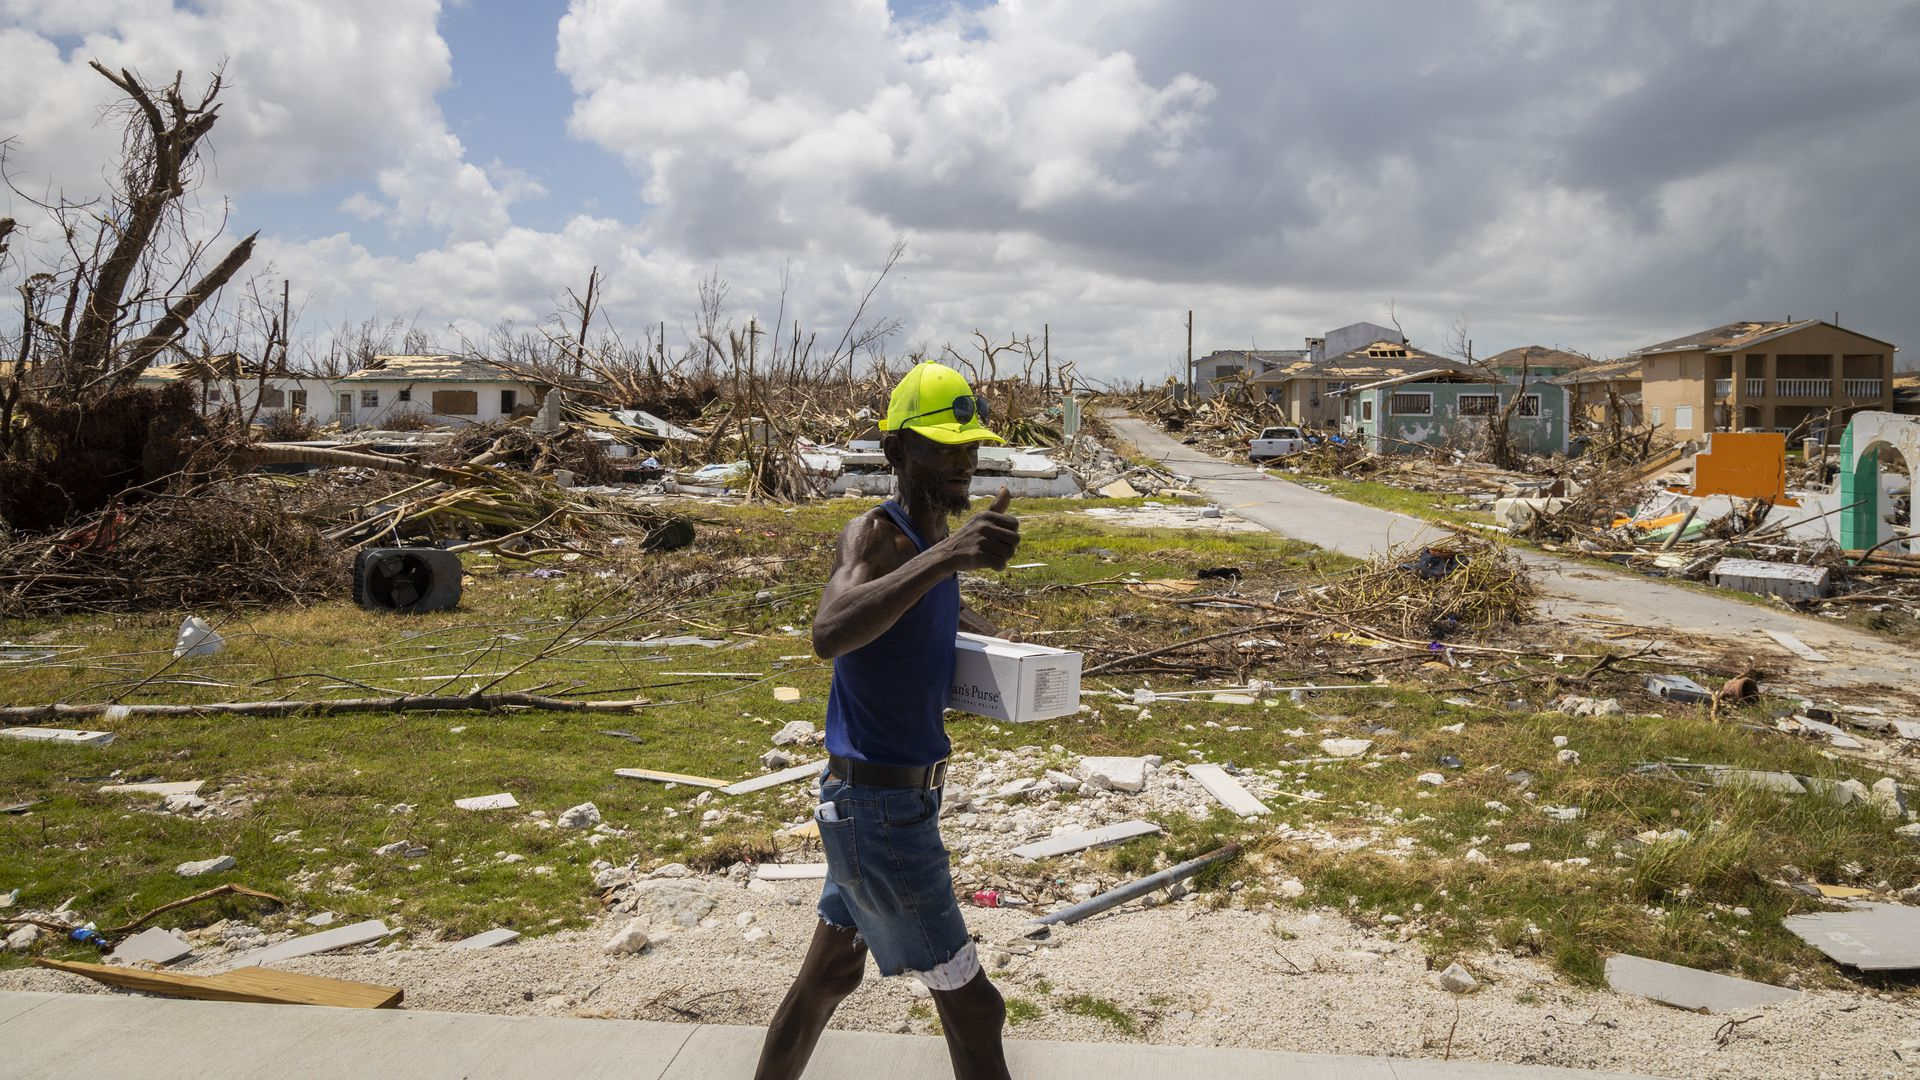 Growing Up In Bad Neighborhoods Has A Devastating Impact Study >> Dorian Devastated Bahamas Lashed By Tropical Storm